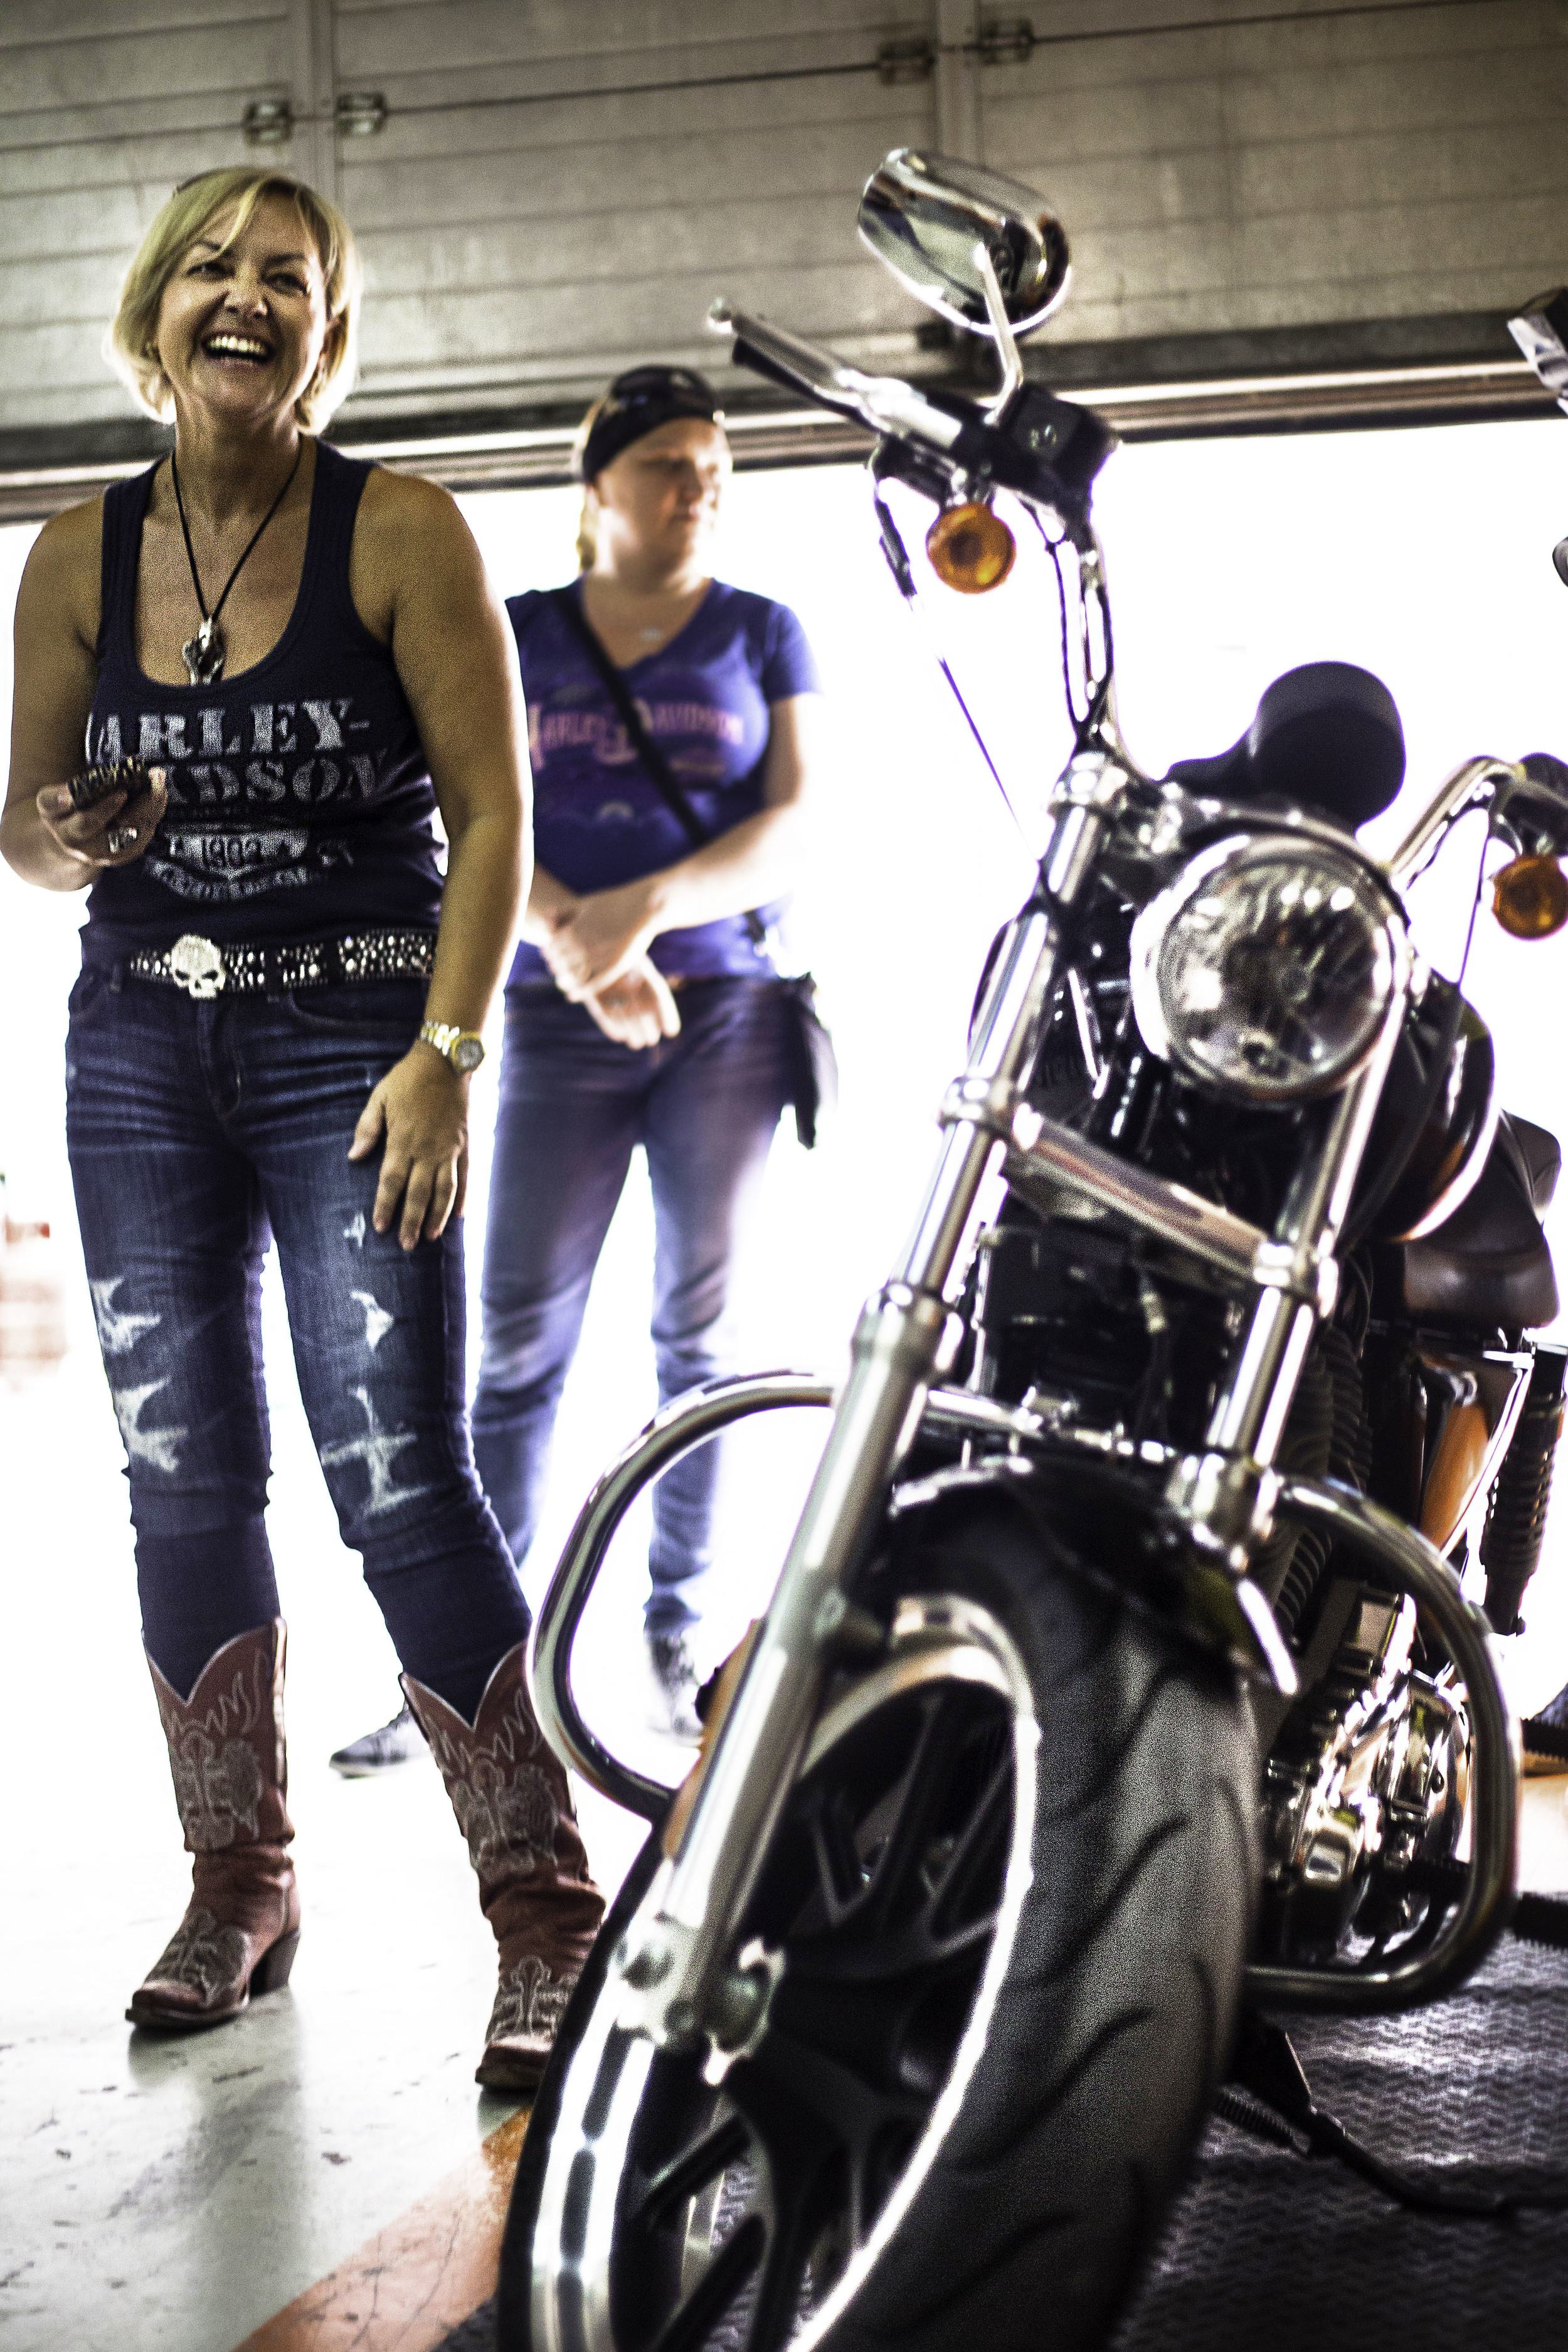 Dubai Ladies of Harley Officer Susanne Kruppa.jpg